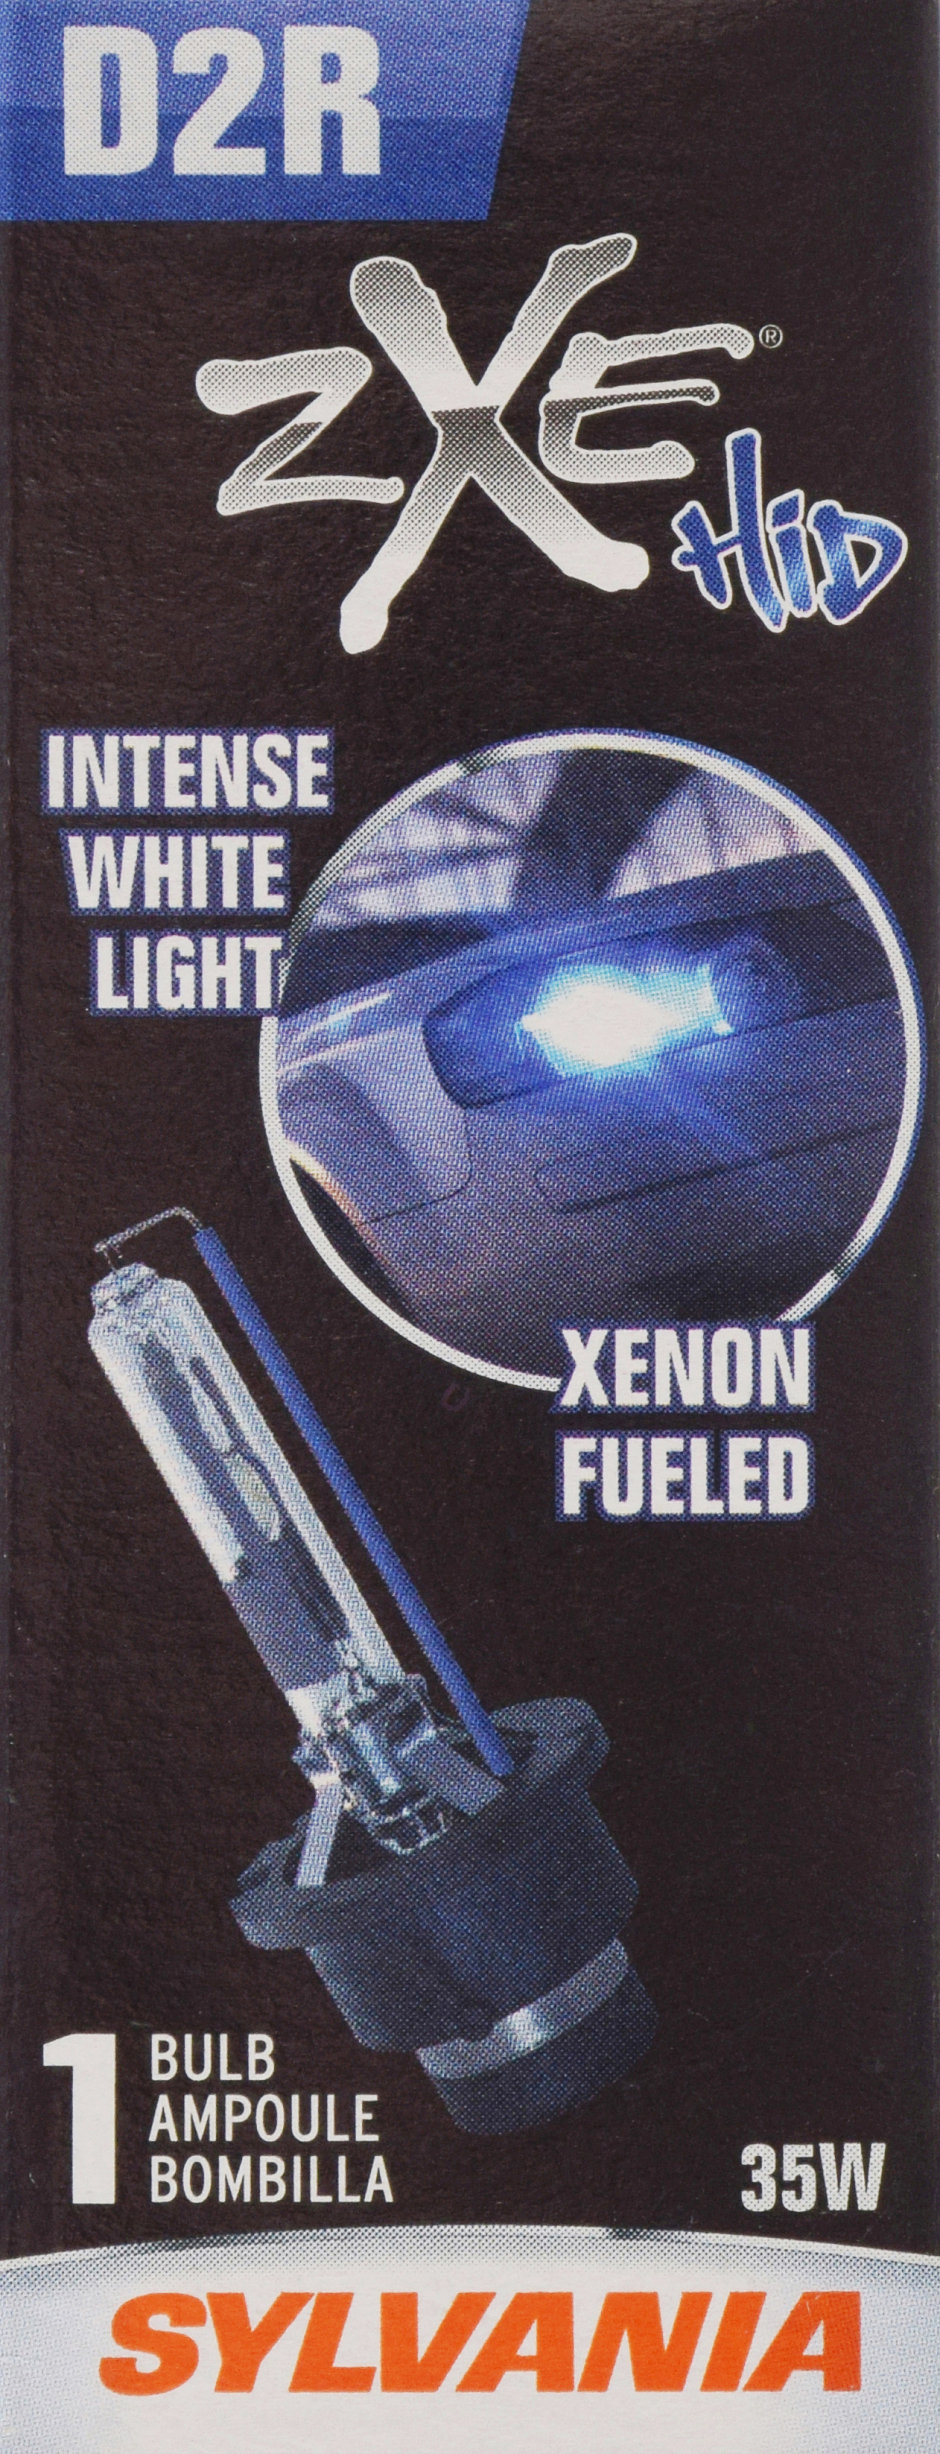 Whitest D2R Headlight Bulb